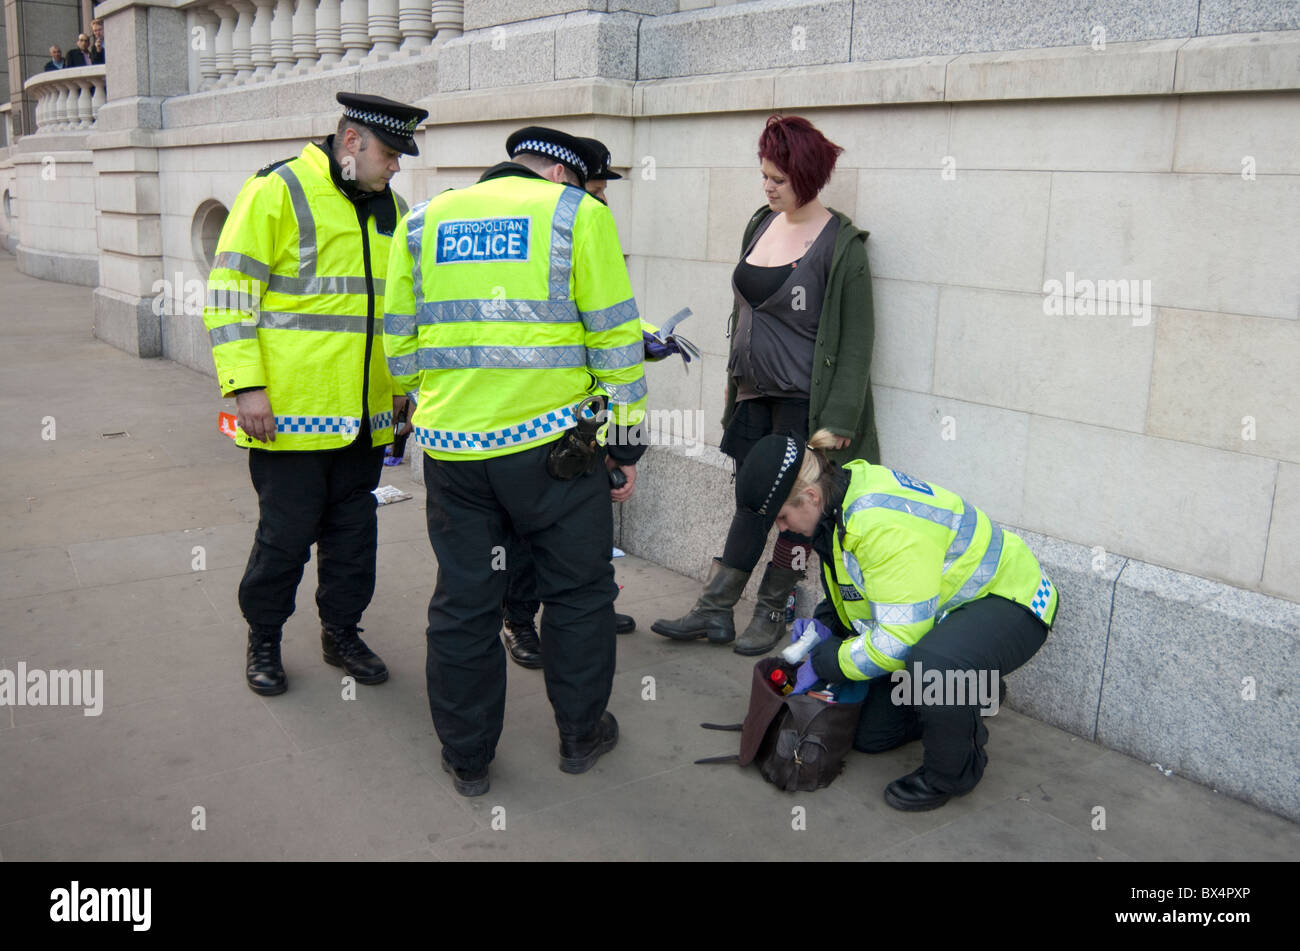 Police search a young woman on the street in London. - Stock Image